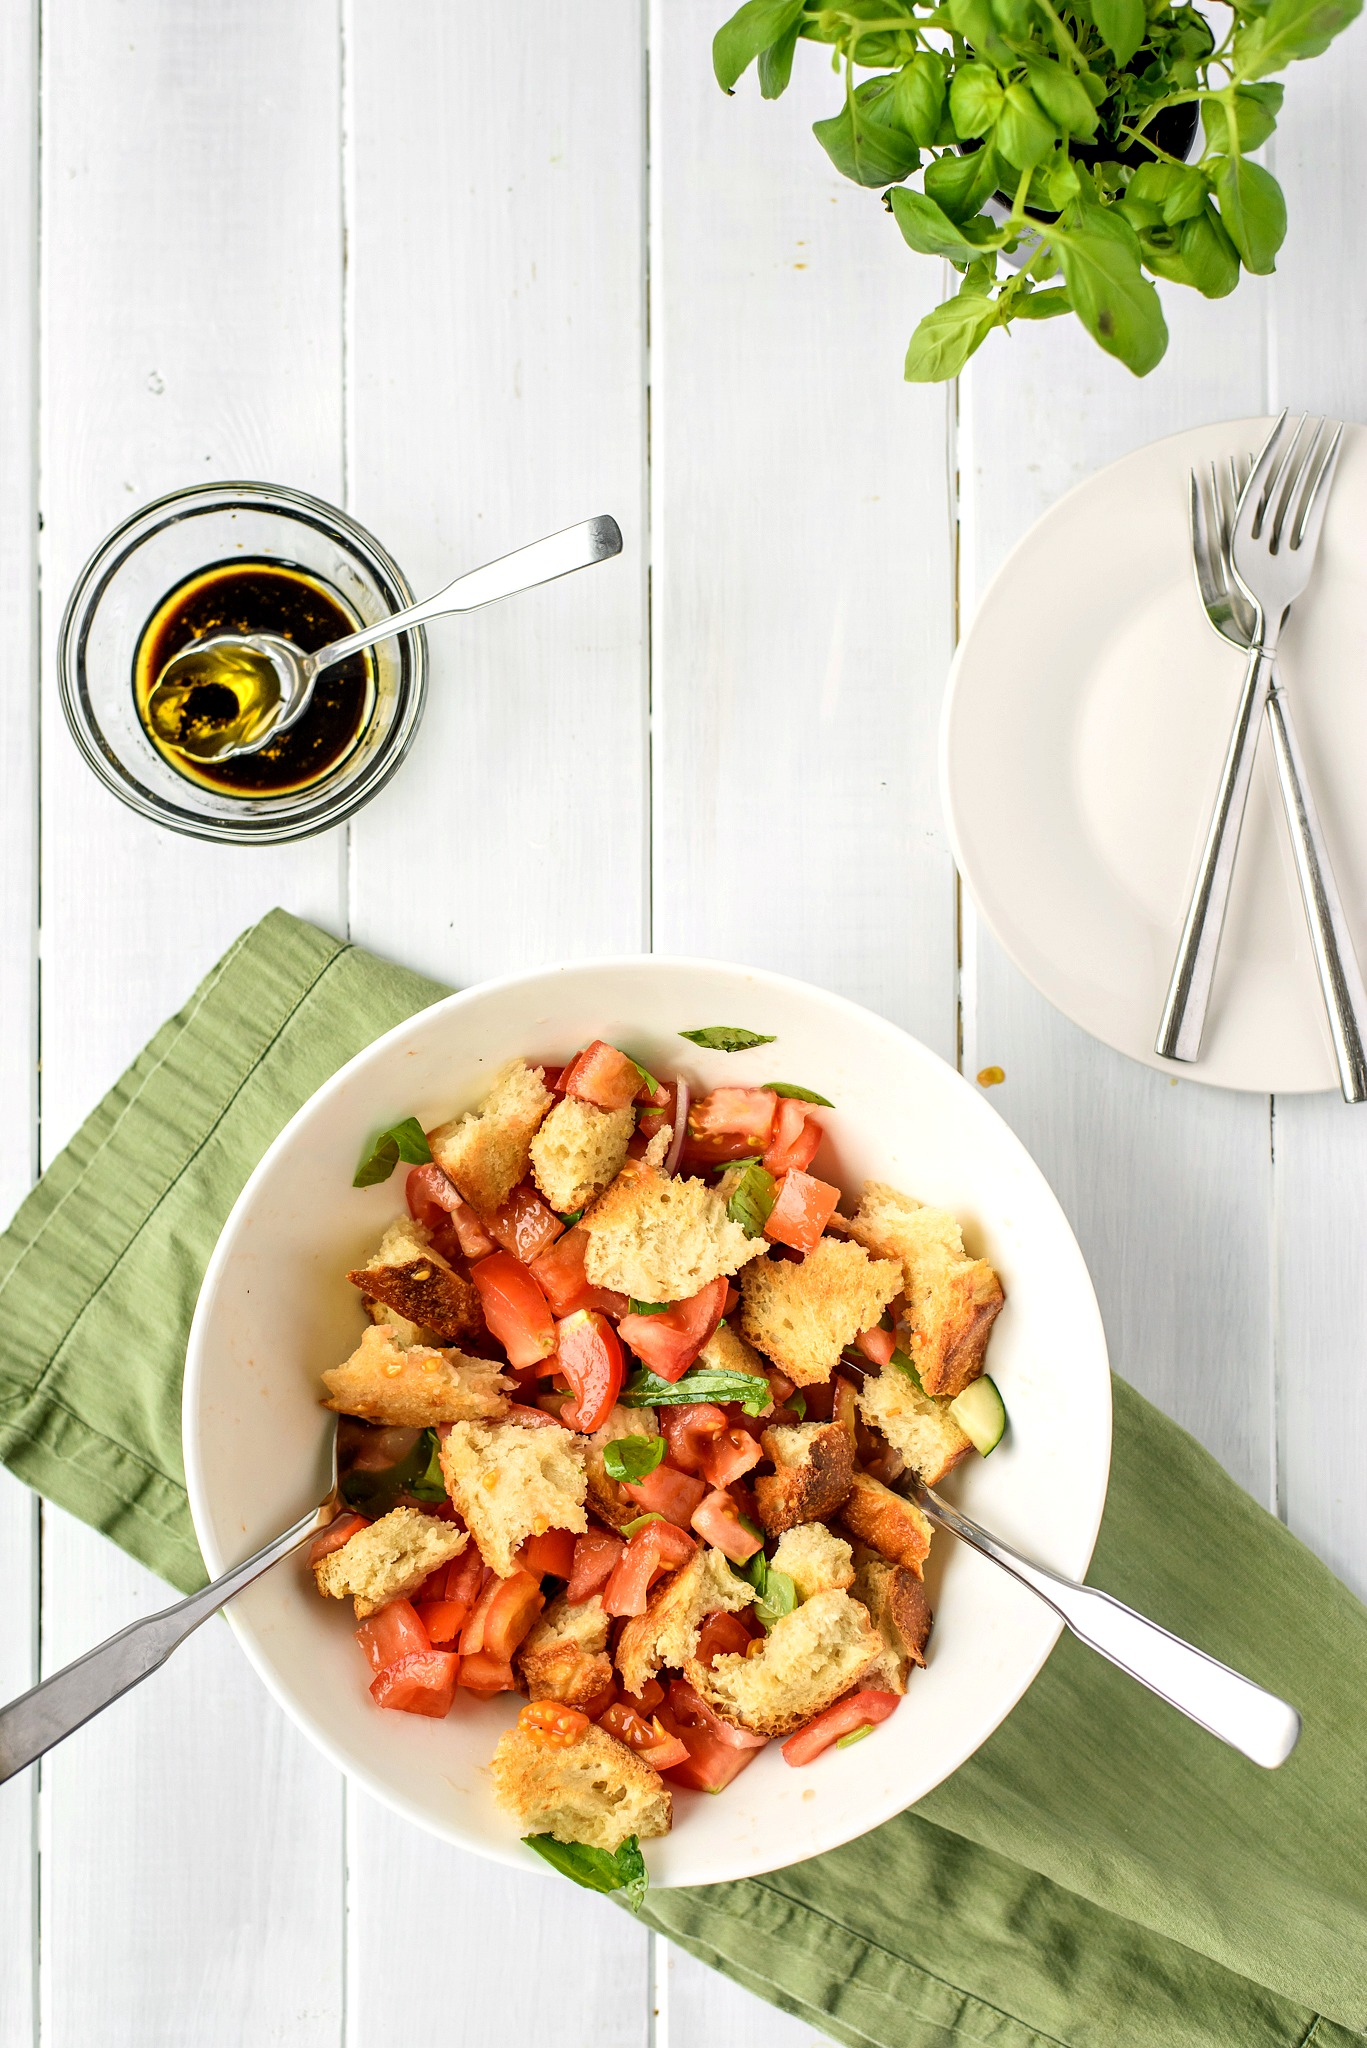 Panzanella Tomato Salad with Balsamic Vinaigrette